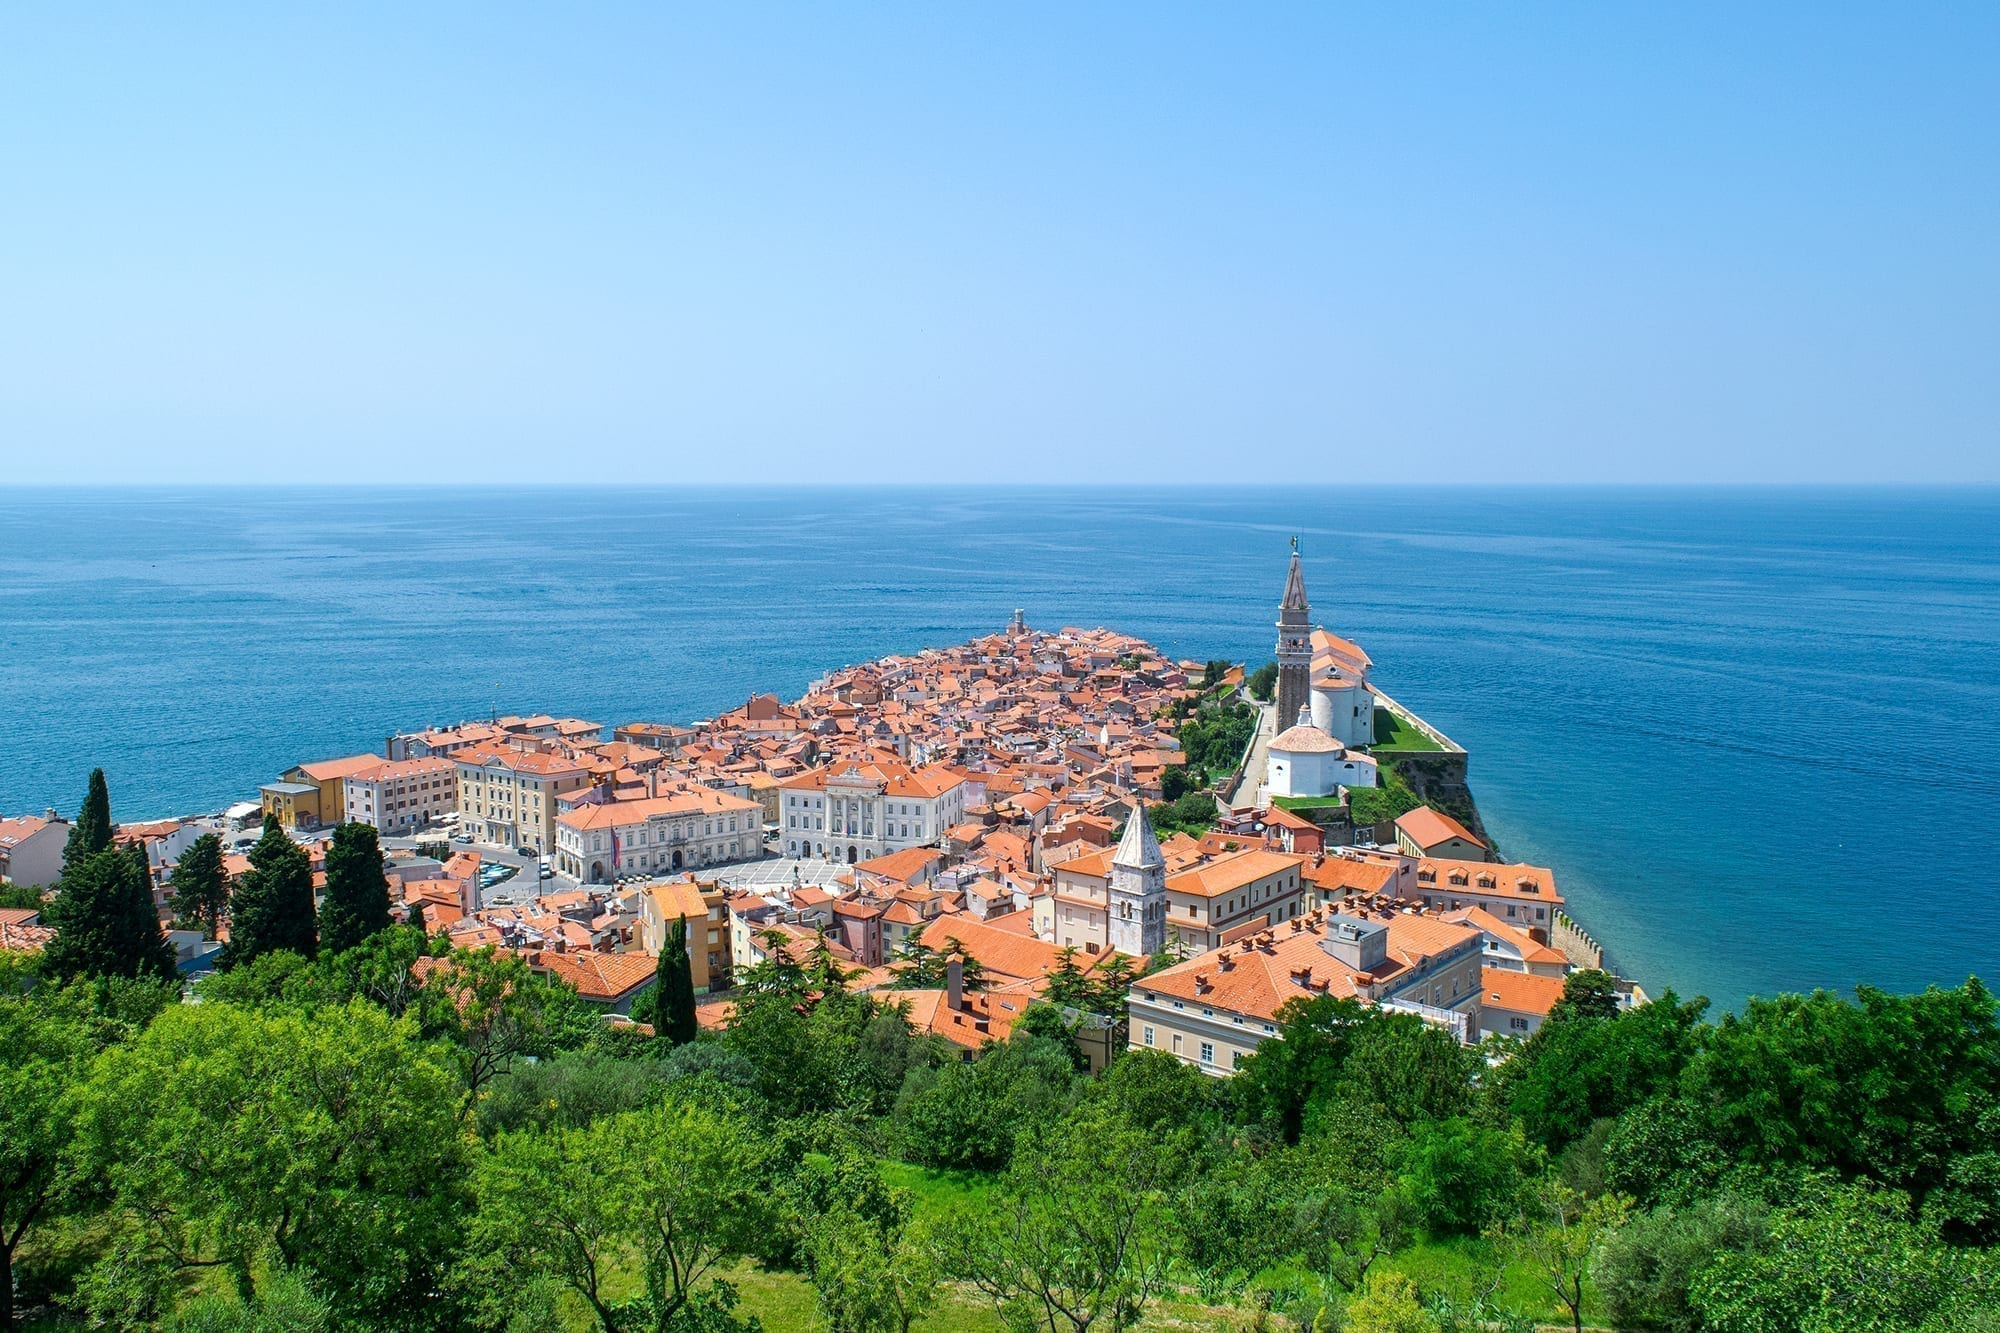 Piran Slovenia as seen from above. Piran is one of the best places to visit in Slovenia